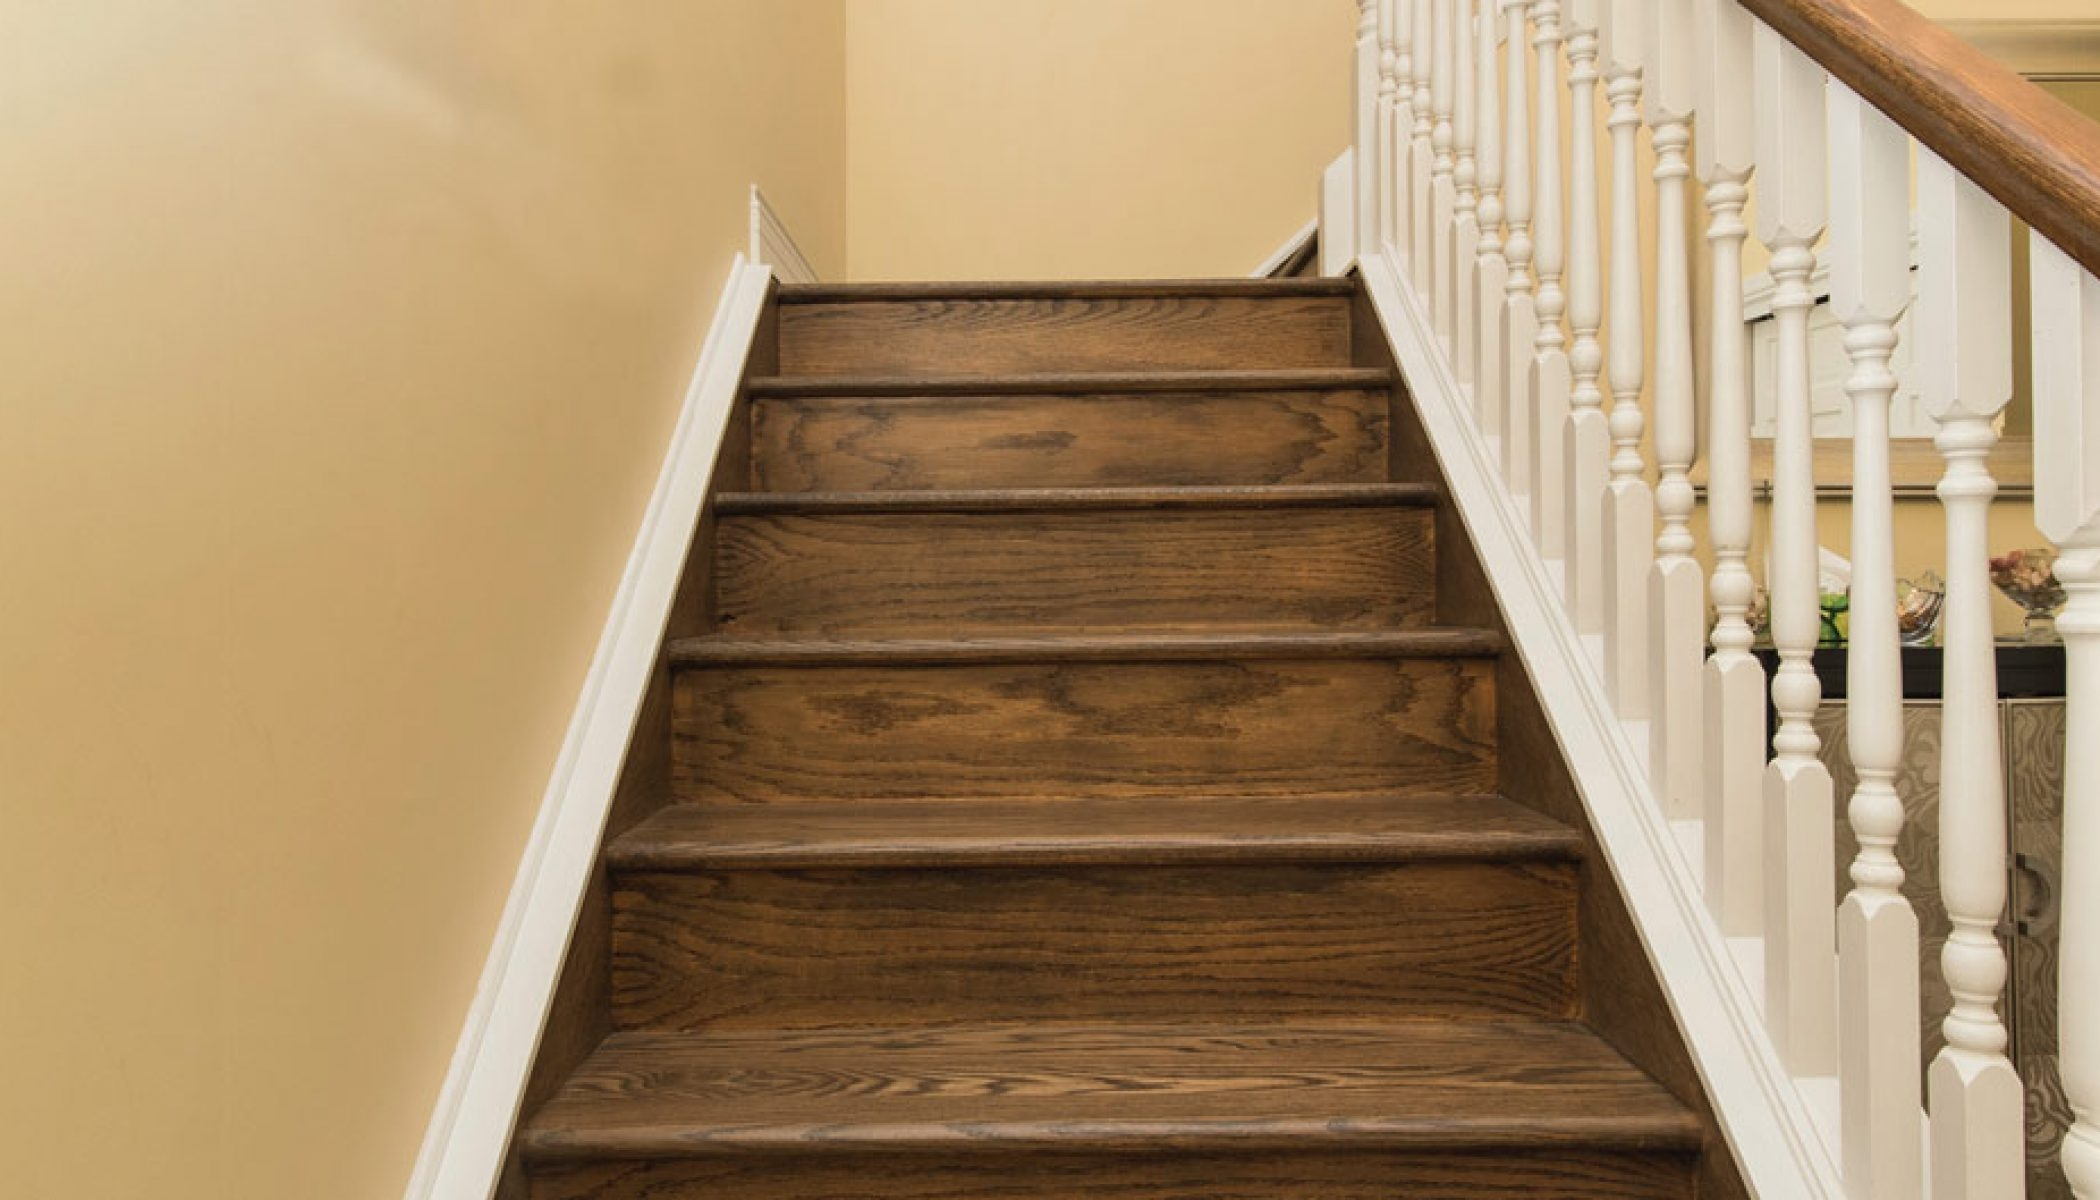 You Want To Install Hardwood On Stairs – Reallycheapfloors | Oak Stair Treads For Sale | Hardwood Lumber | Risers | Wood Stair | Stair Parts | Wood